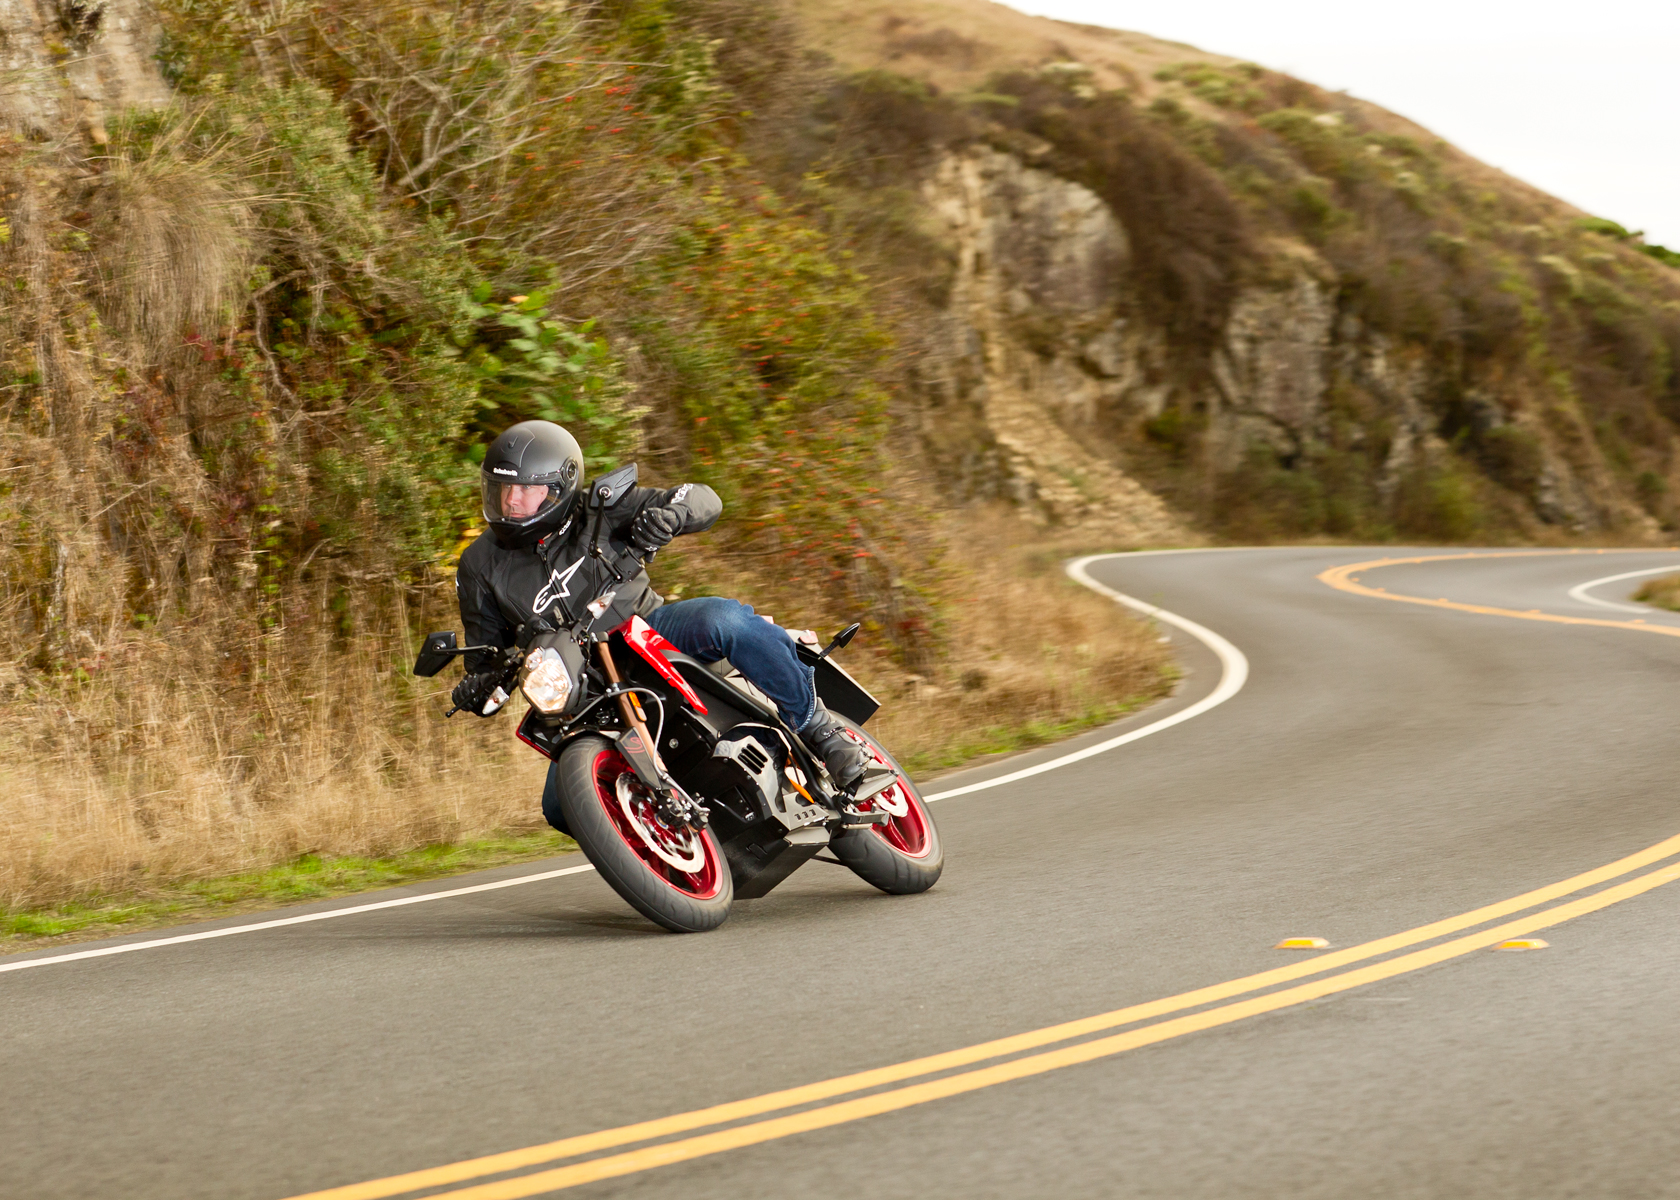 2012 Zero S Electric Motorcycle: Lean Right